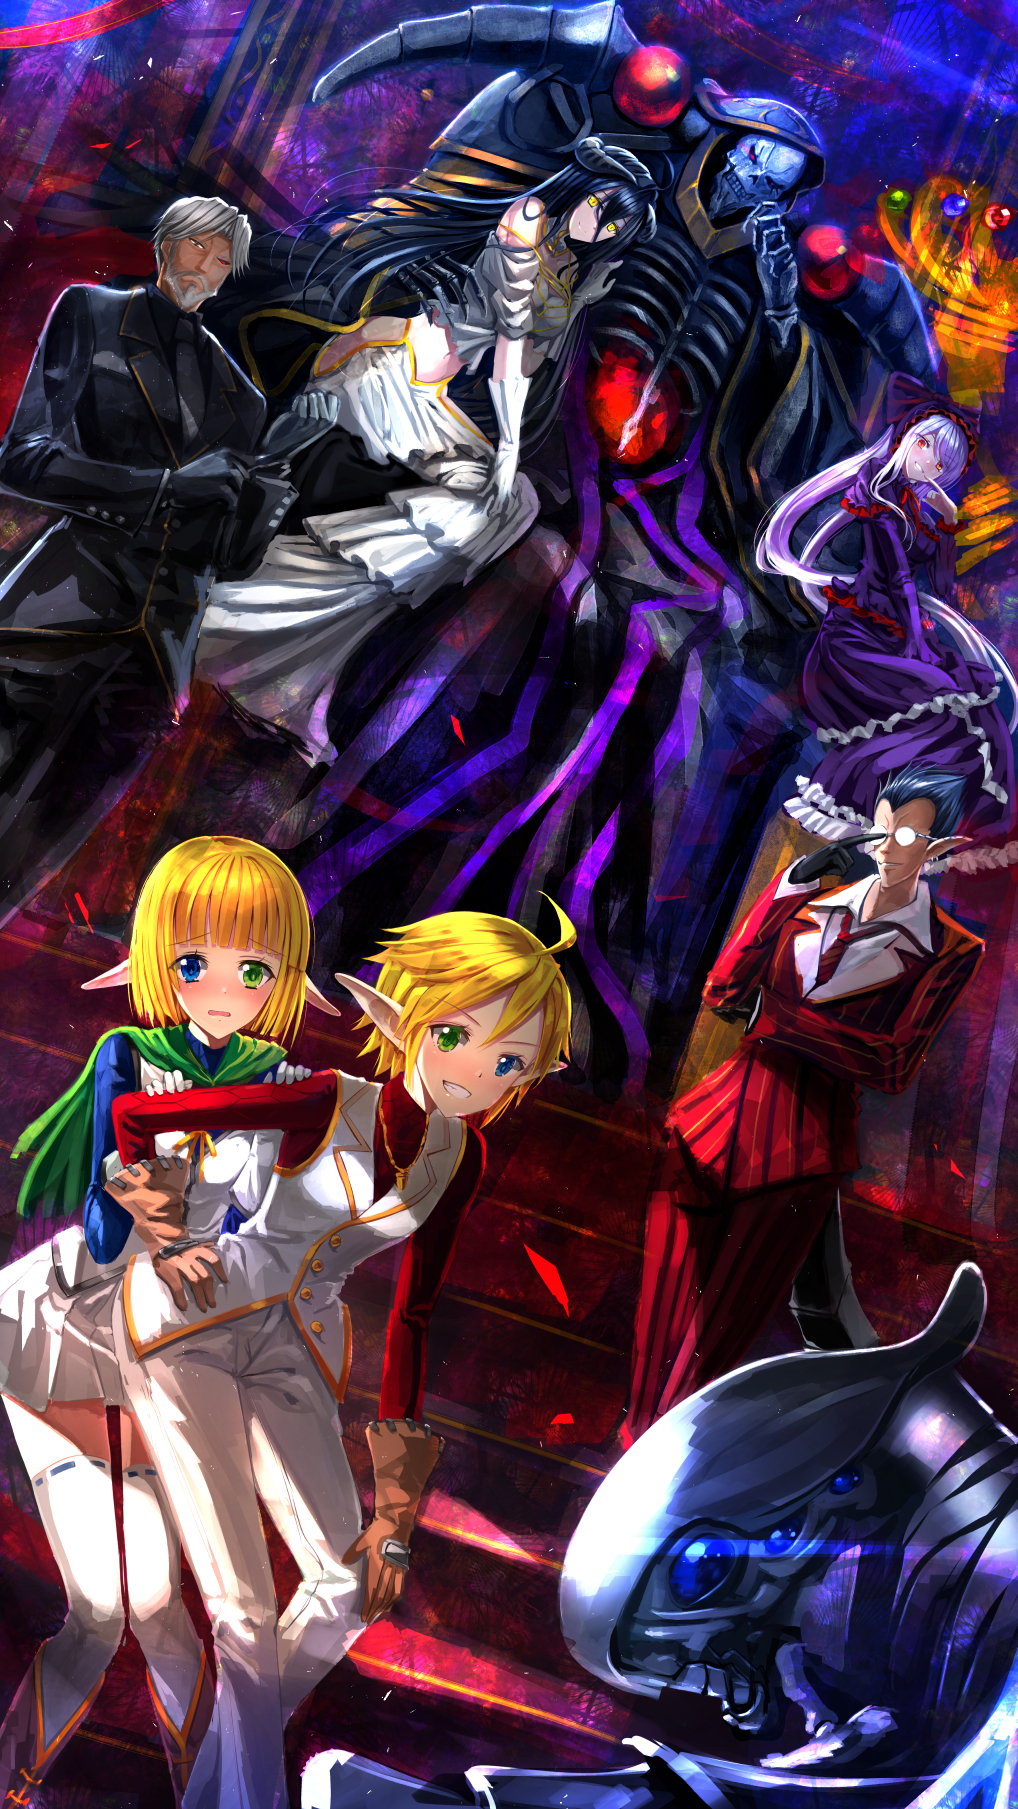 Overlord Mobile Wallpaper 1911769 Zerochan Anime Image Board